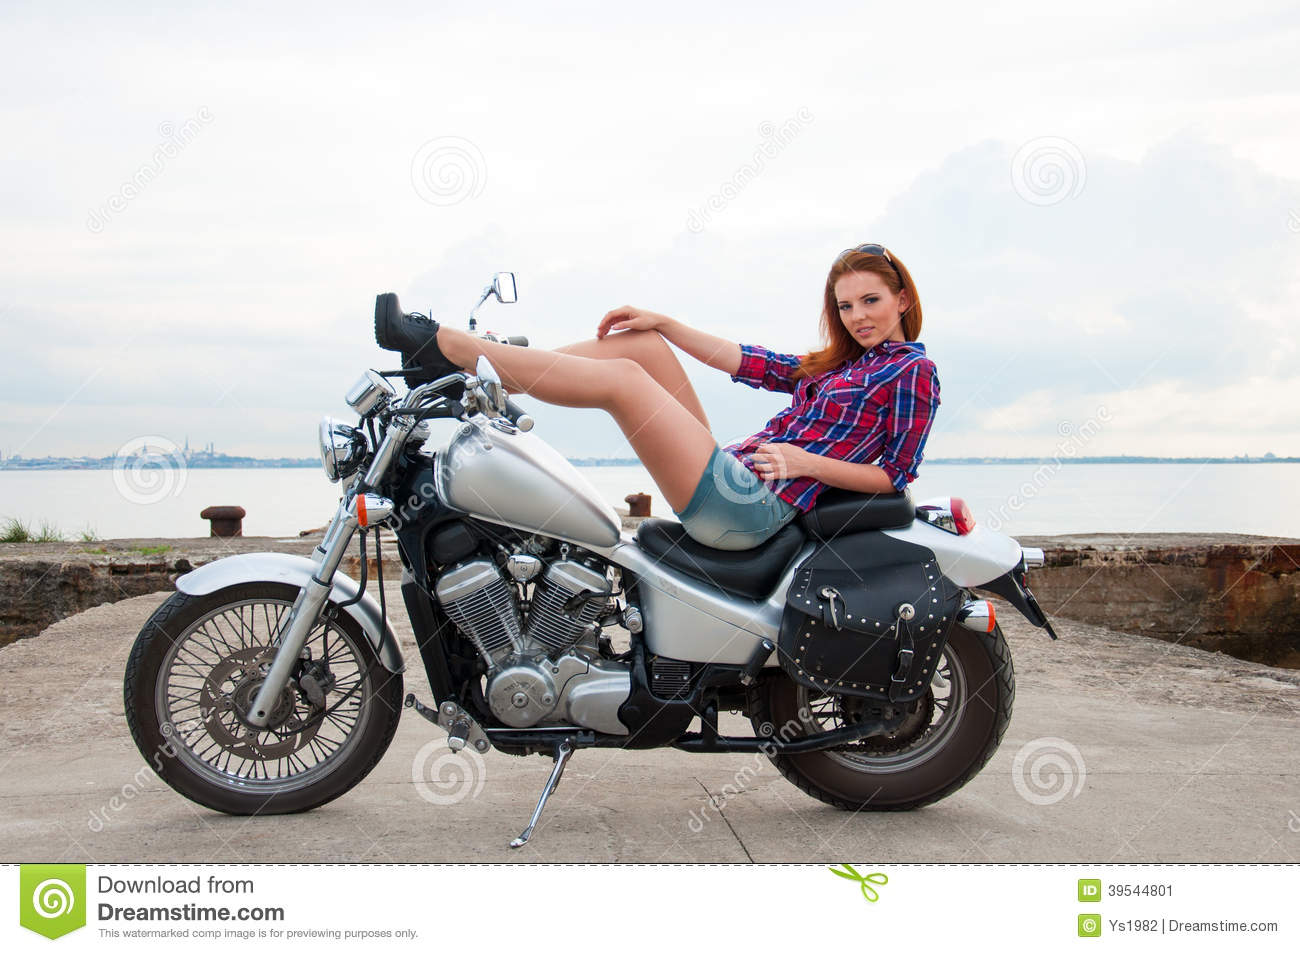 beau sexy jeune femme sur une moto image stock image du mignon pose 39544801. Black Bedroom Furniture Sets. Home Design Ideas